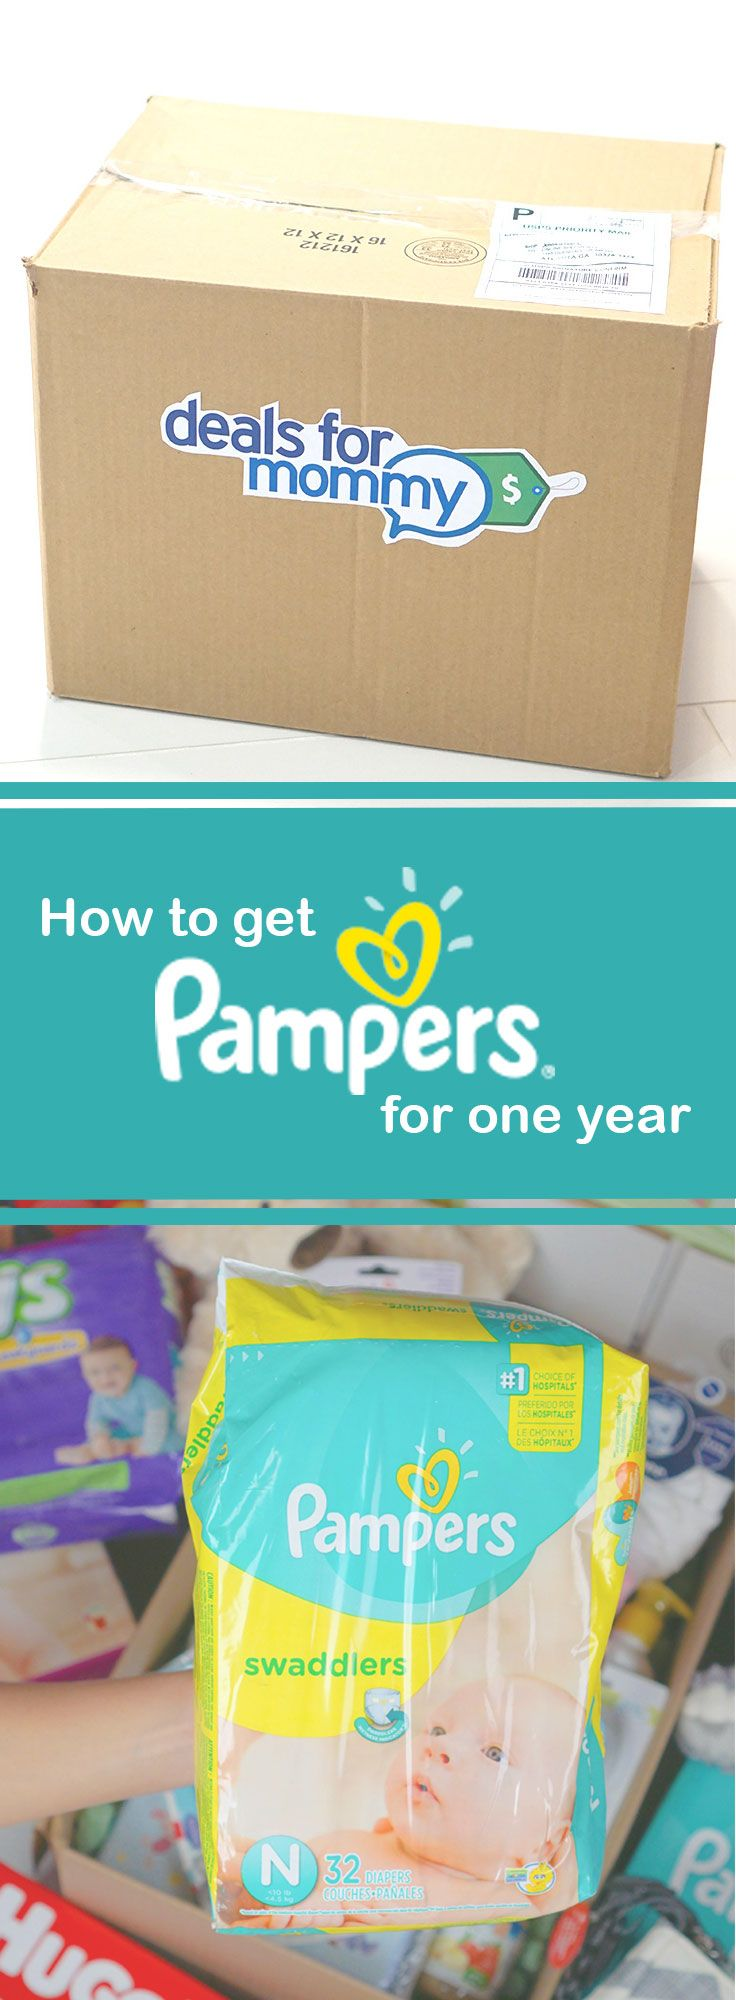 Most new dads don't know how easy it is to get free diapers online. All you have to do is sign up and your instantly entered to win an entire year of diapers for free! It's easy and 100% free.